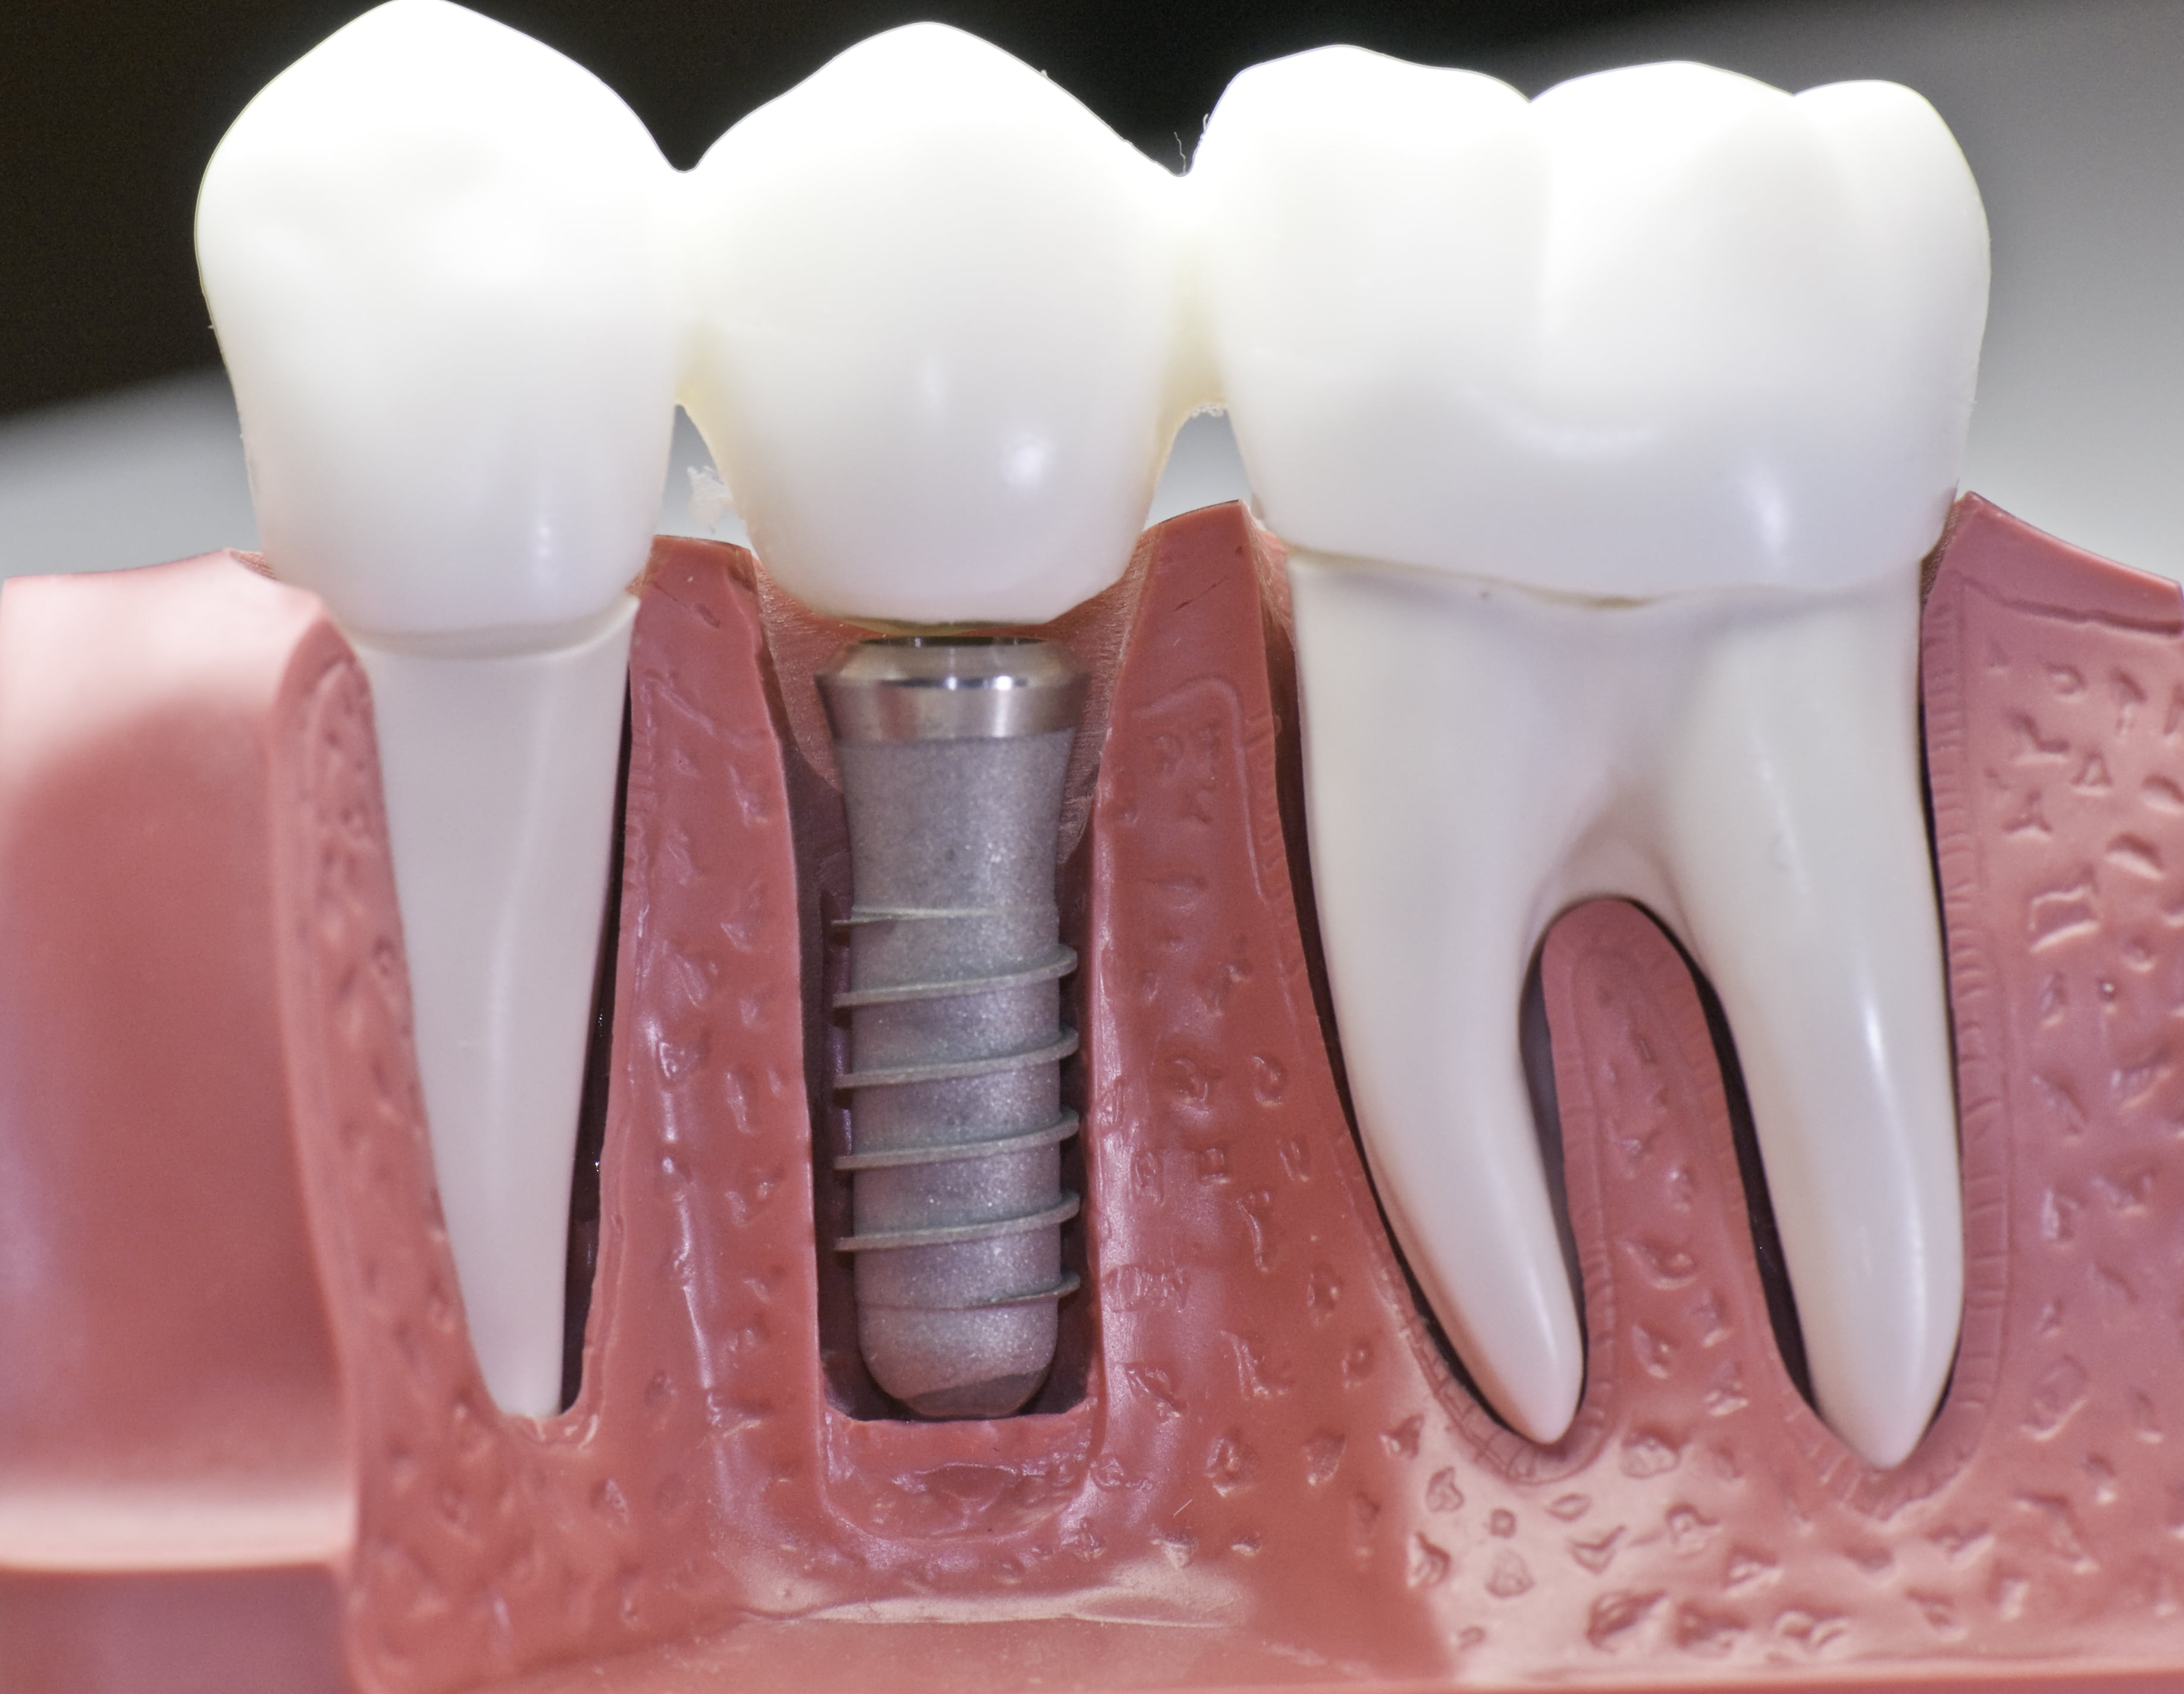 Dental Implants Treatment Experts Share Vital Information About Implant